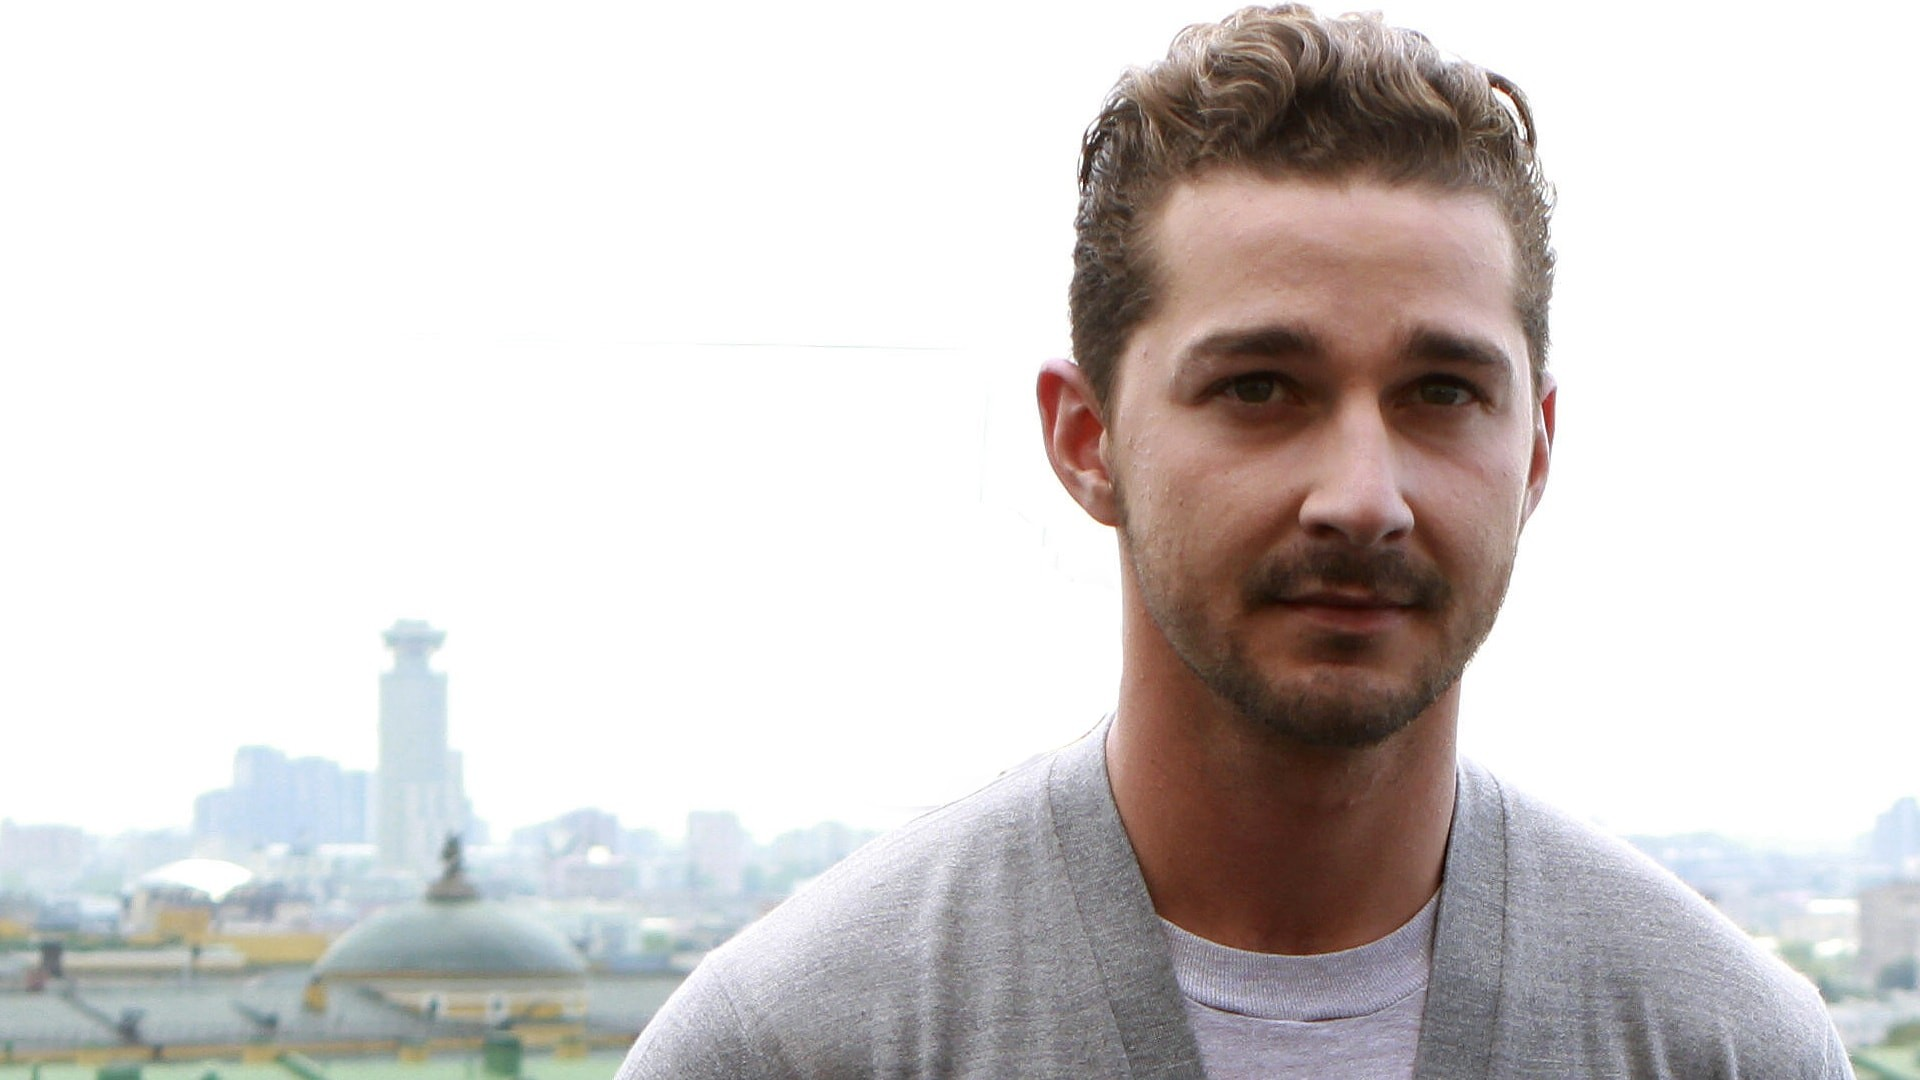 Shia LaBeouf Motivation Wallpaper Special Photos of Shia LaBeouf 1920×1080